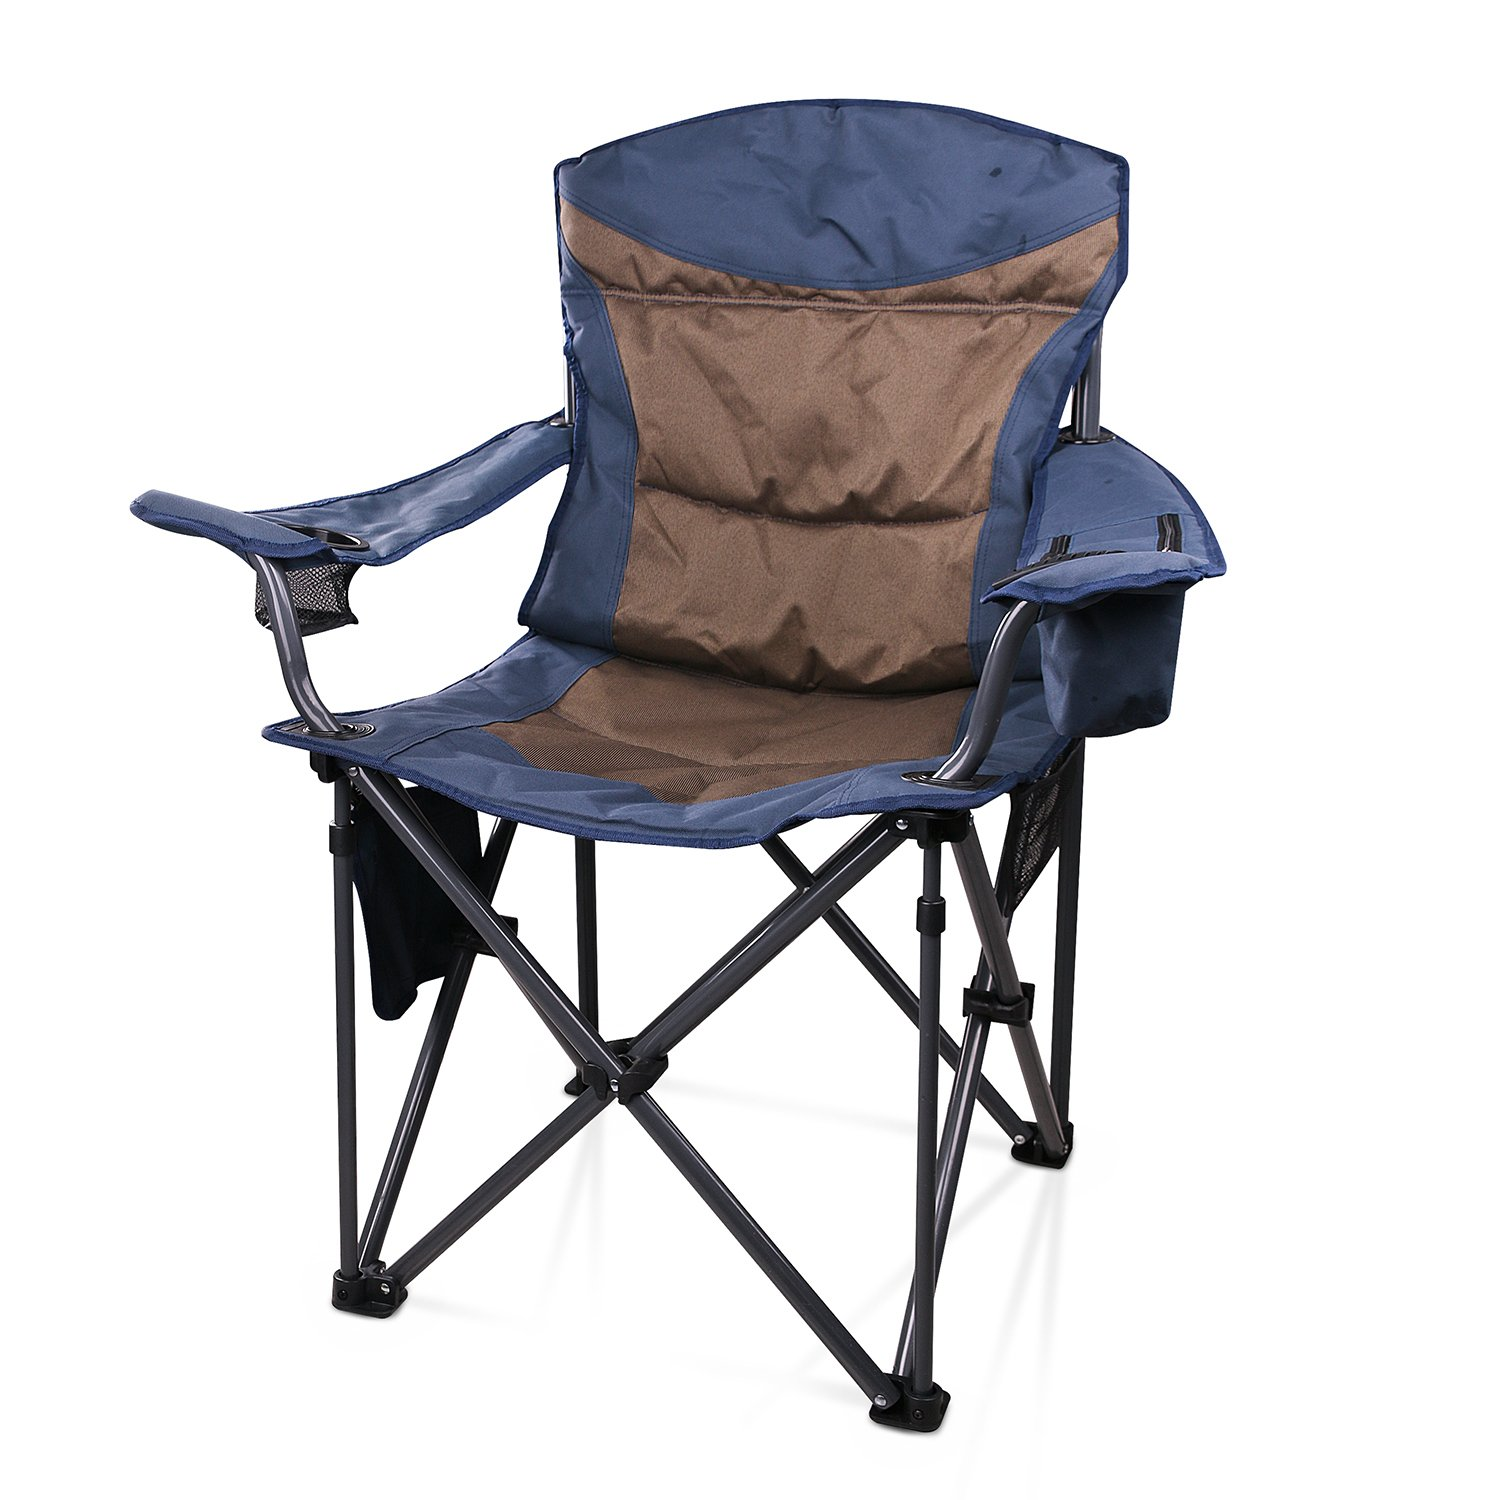 JQ JQ Portable Stable Folding Camping Chair with Carry Bag support up to 660 Ib, Blue